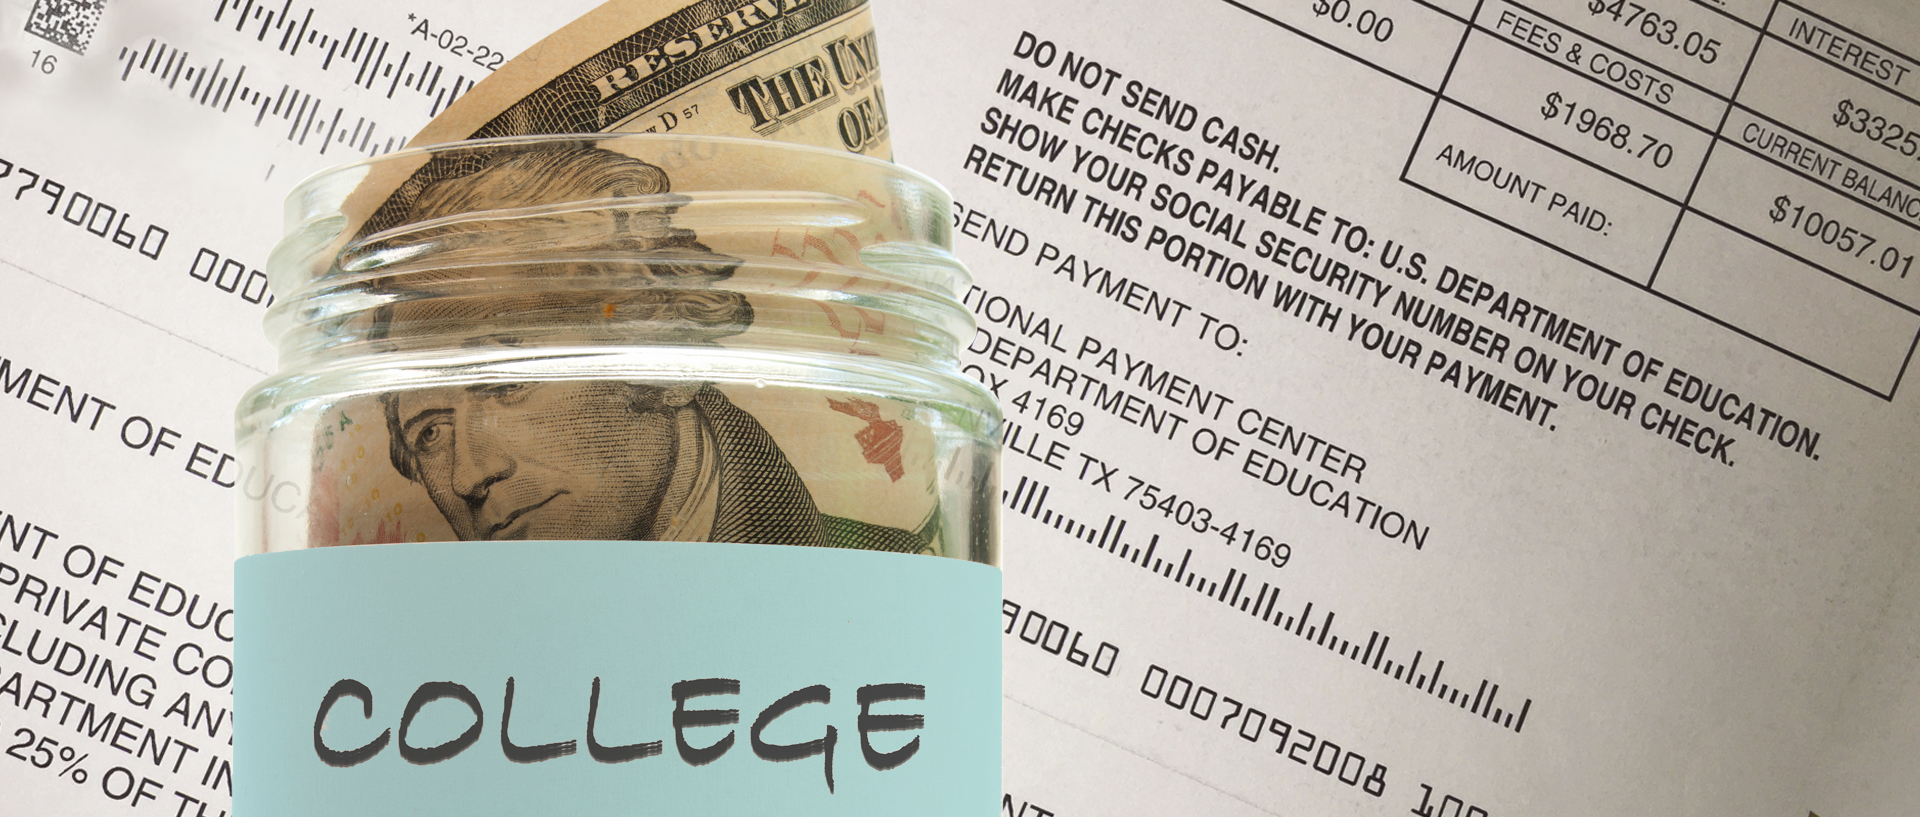 Public Service And Student Loan Debt Consumer Reports